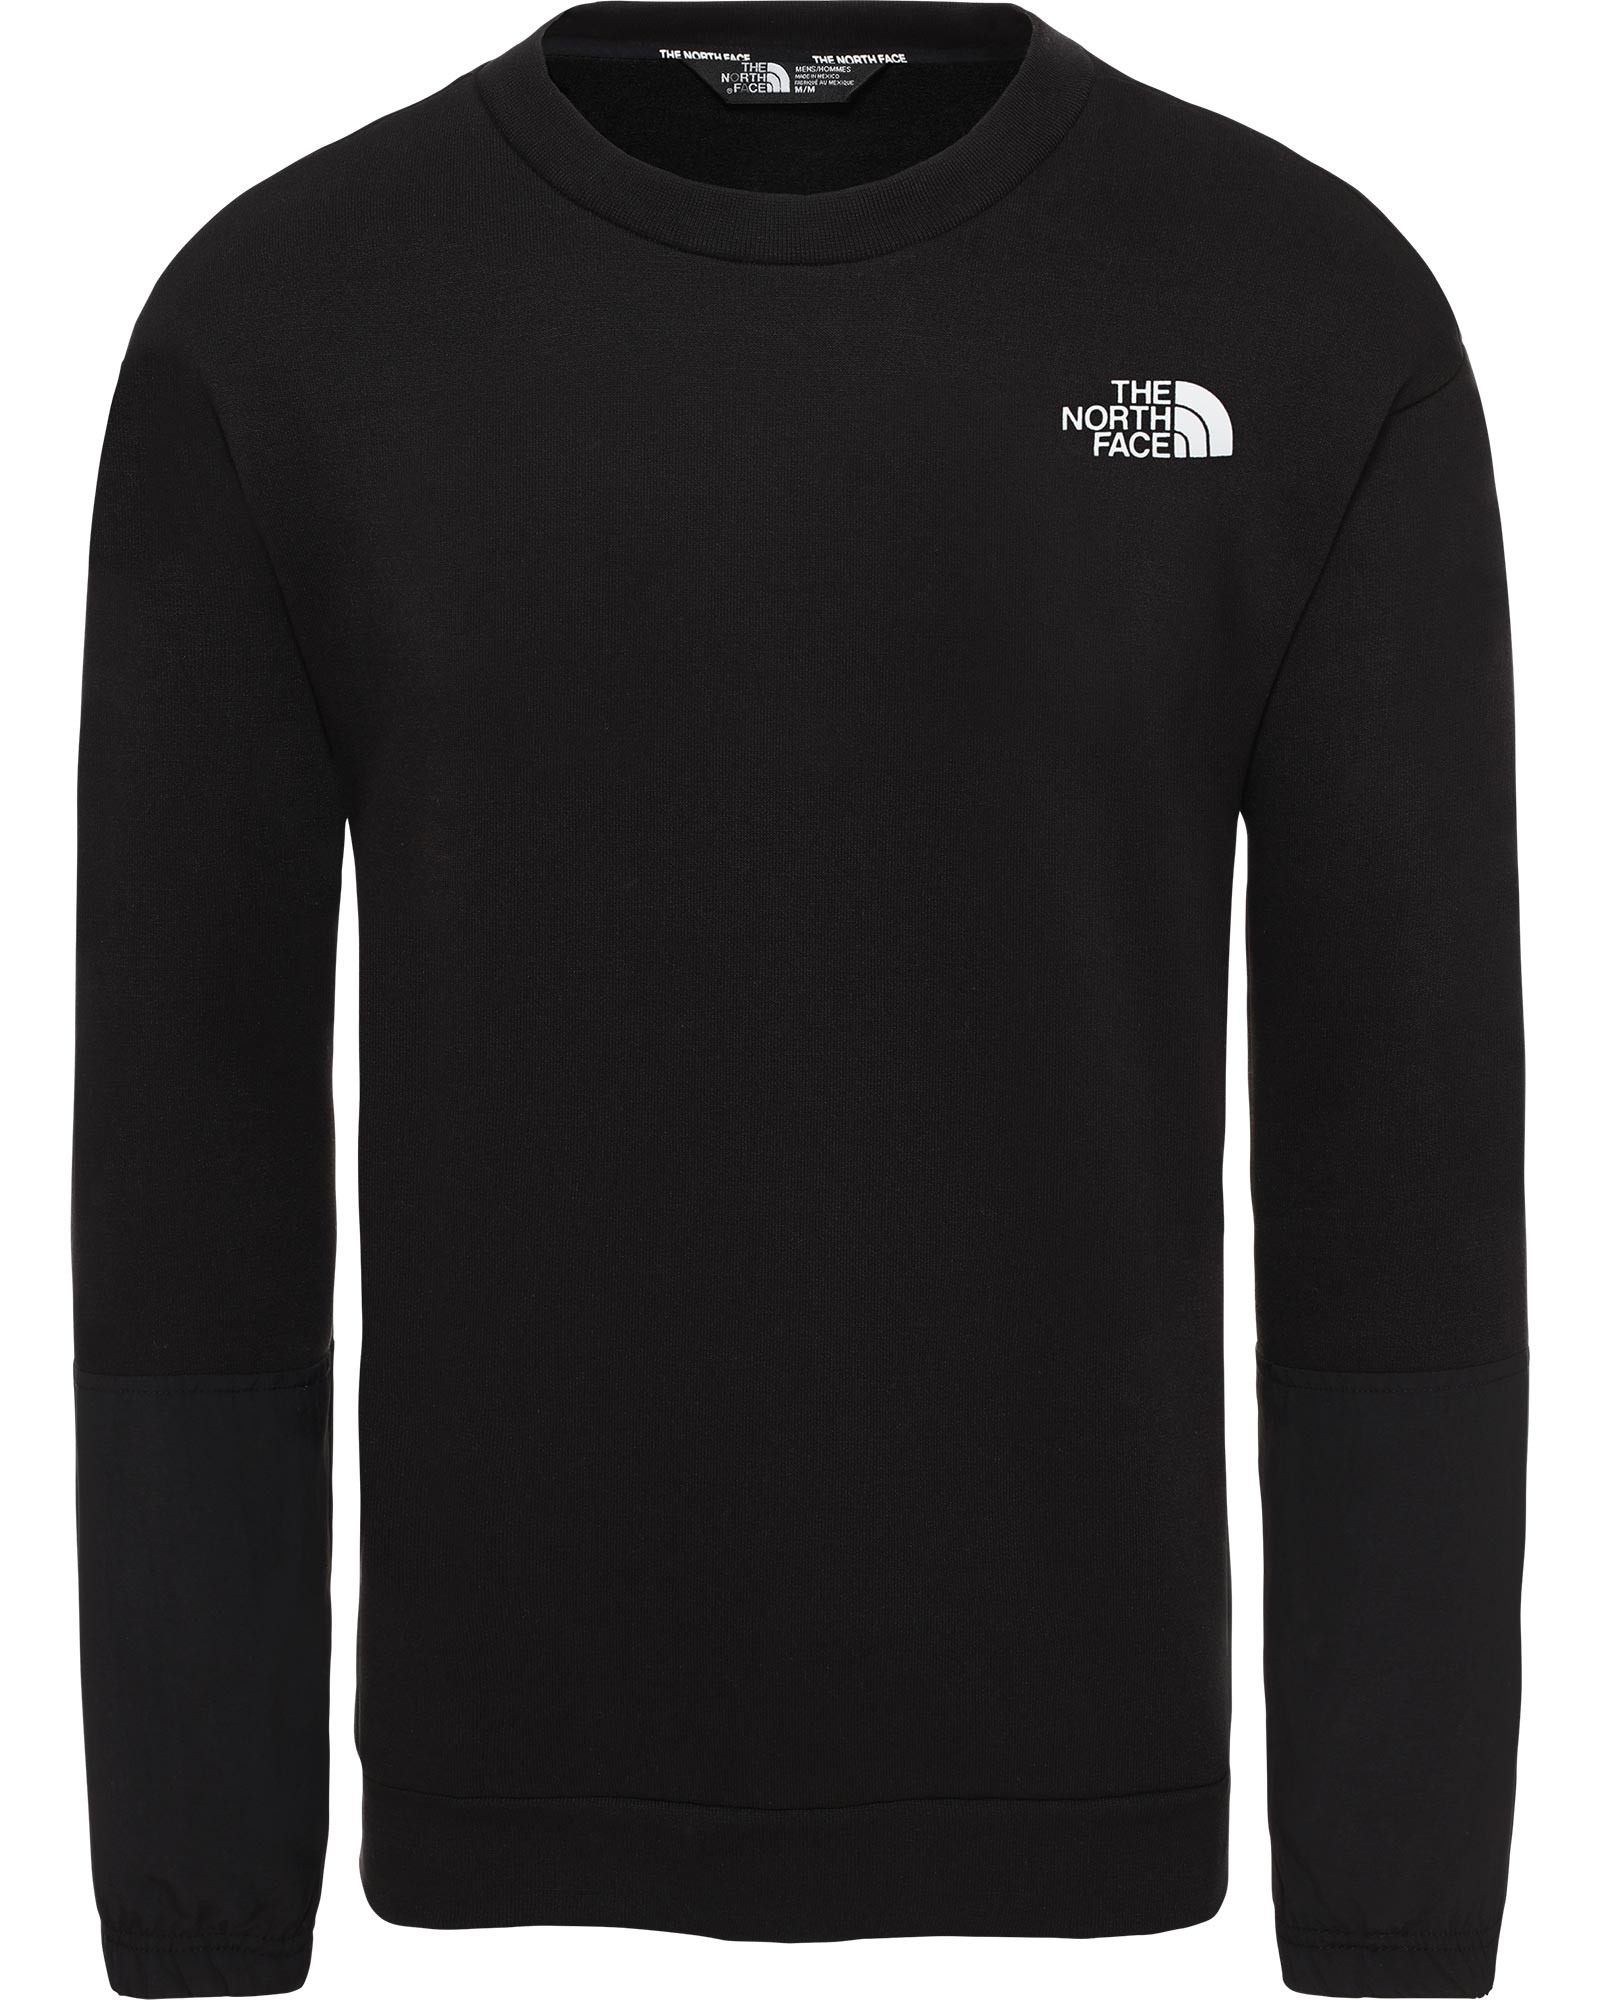 The North Face Womens S/s Nse T-shirt